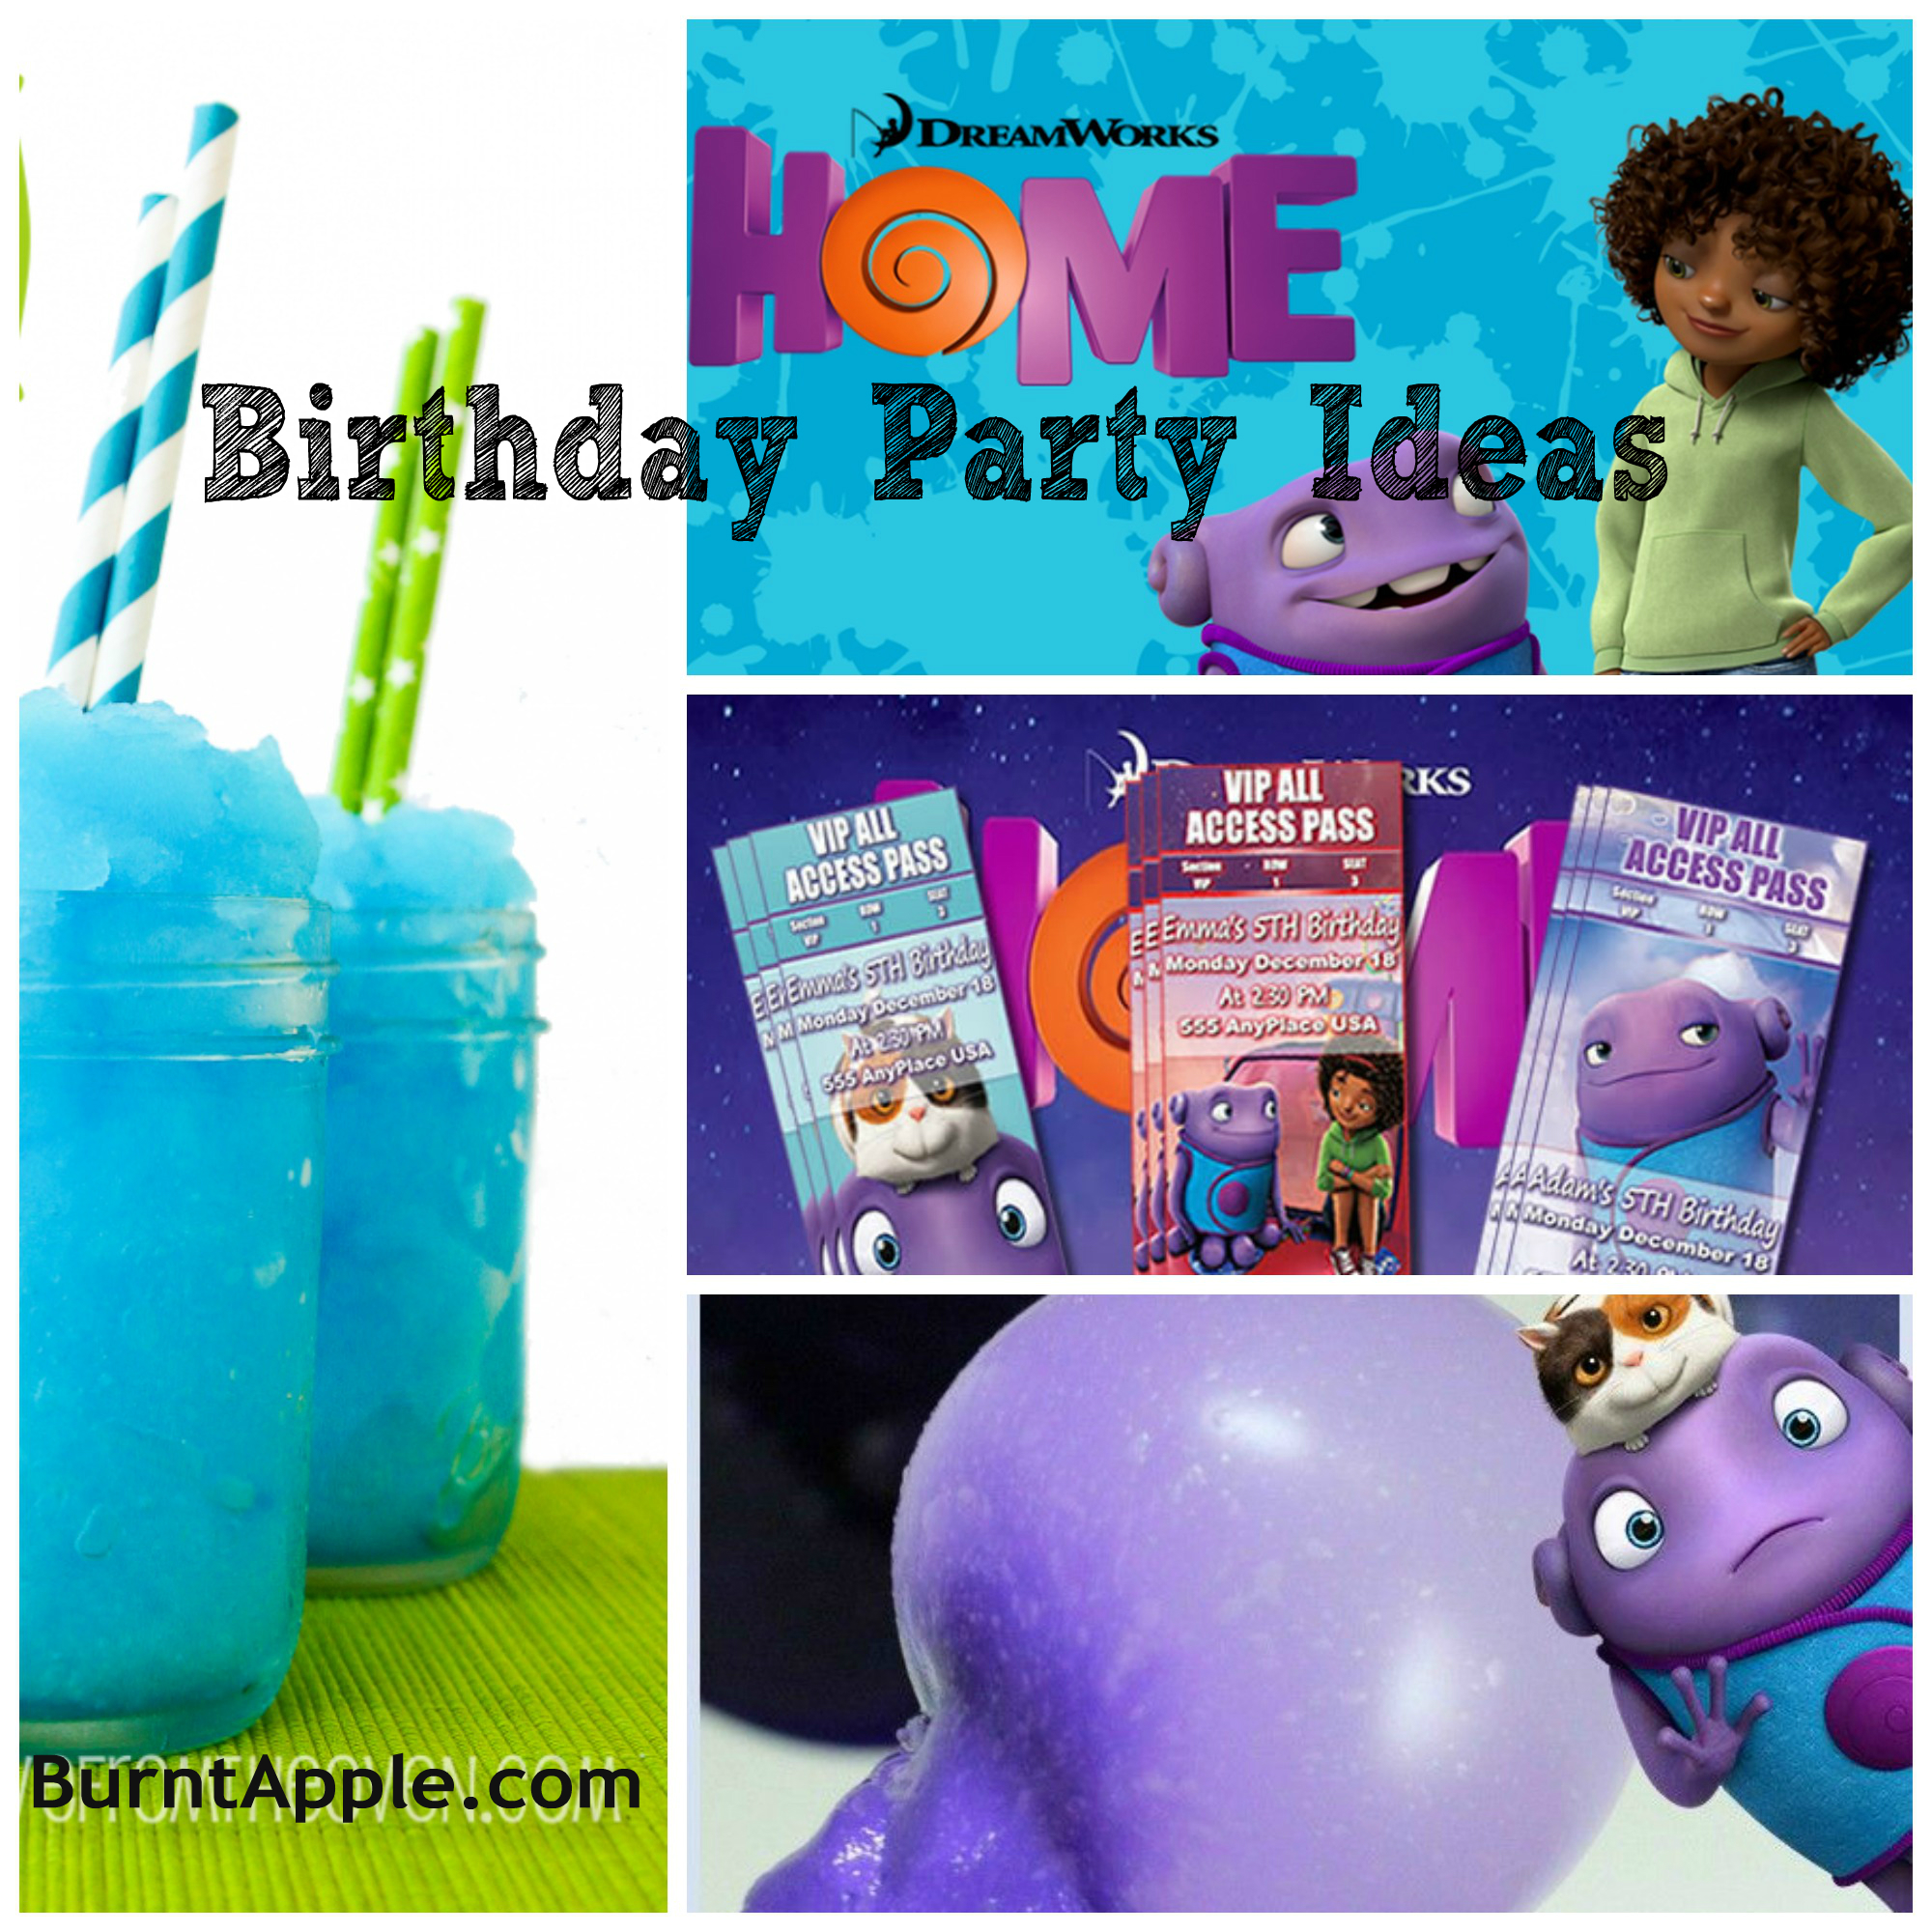 Dreamworks Home Birthday Party Ideas Burnt Apple